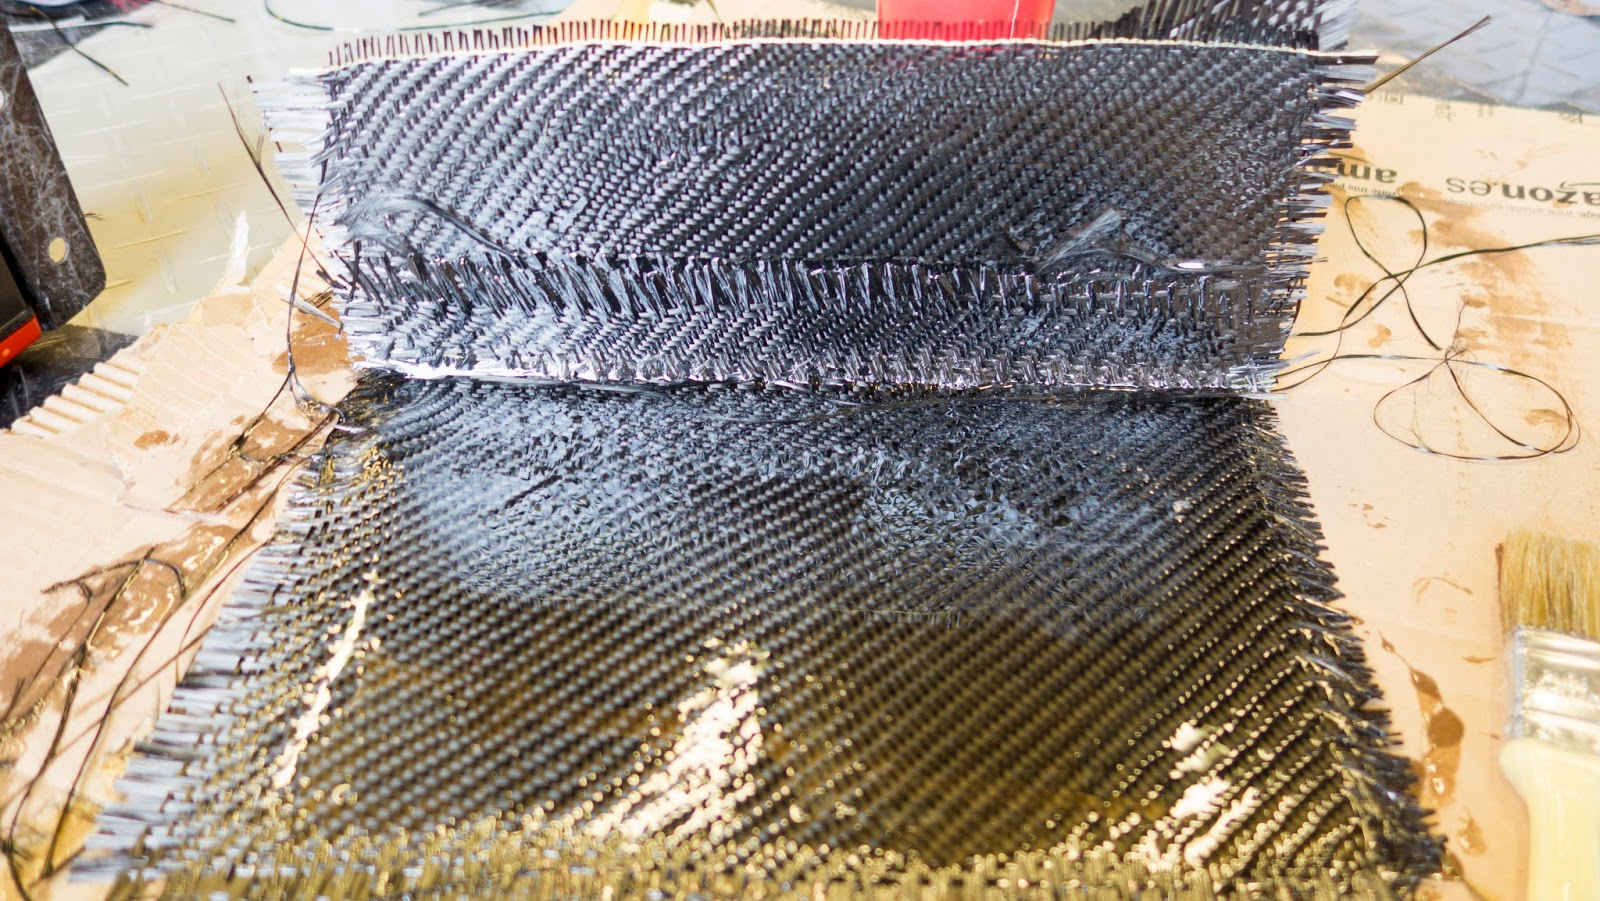 Third and final sheet of carbon fibre laid